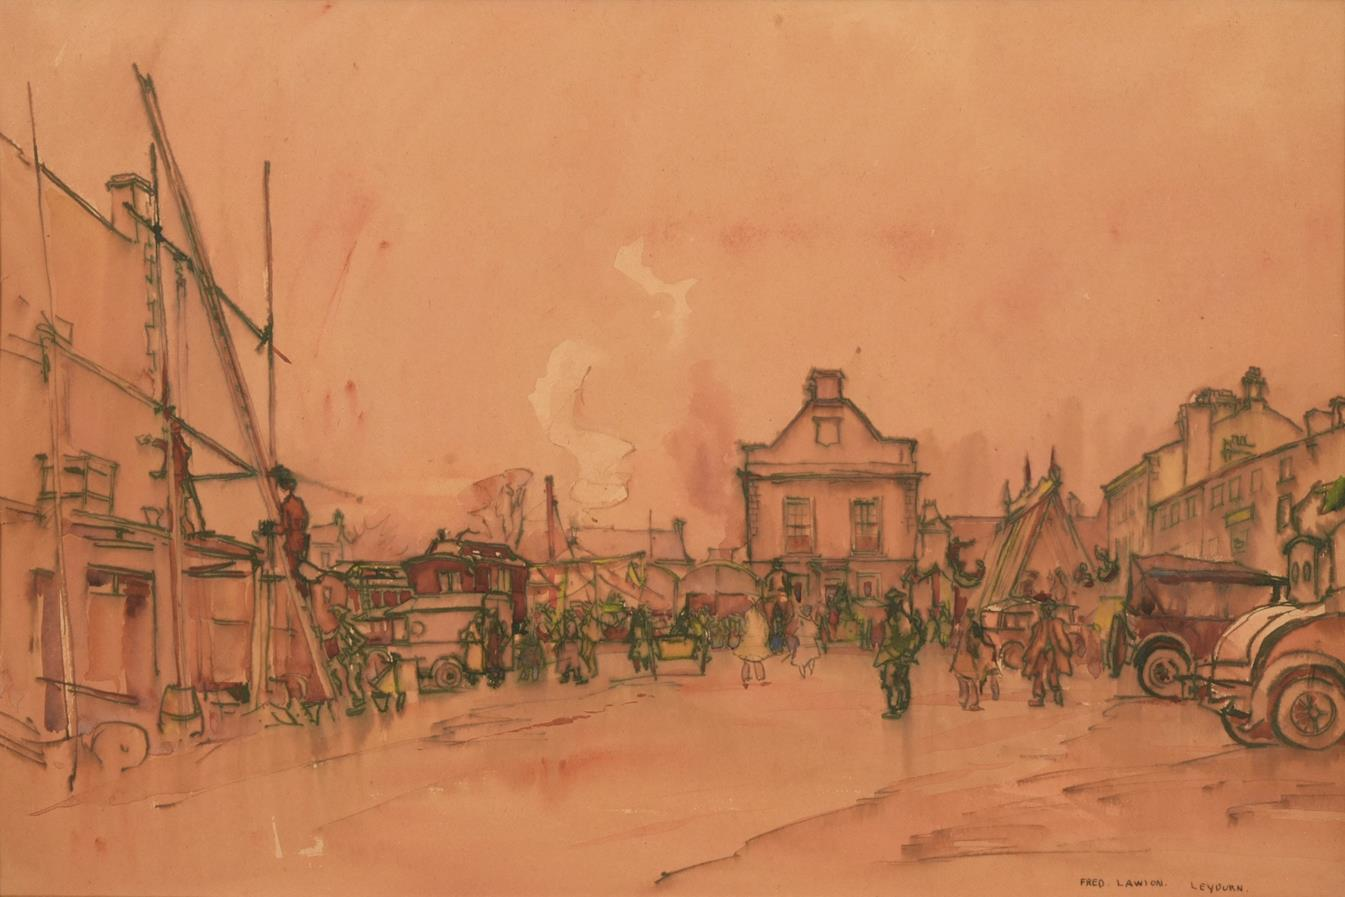 Frederick (Fred) Lawson (1888-1968) ''Leyburn'' Fair Signed and inscribed, ink and watercolour, 35cm